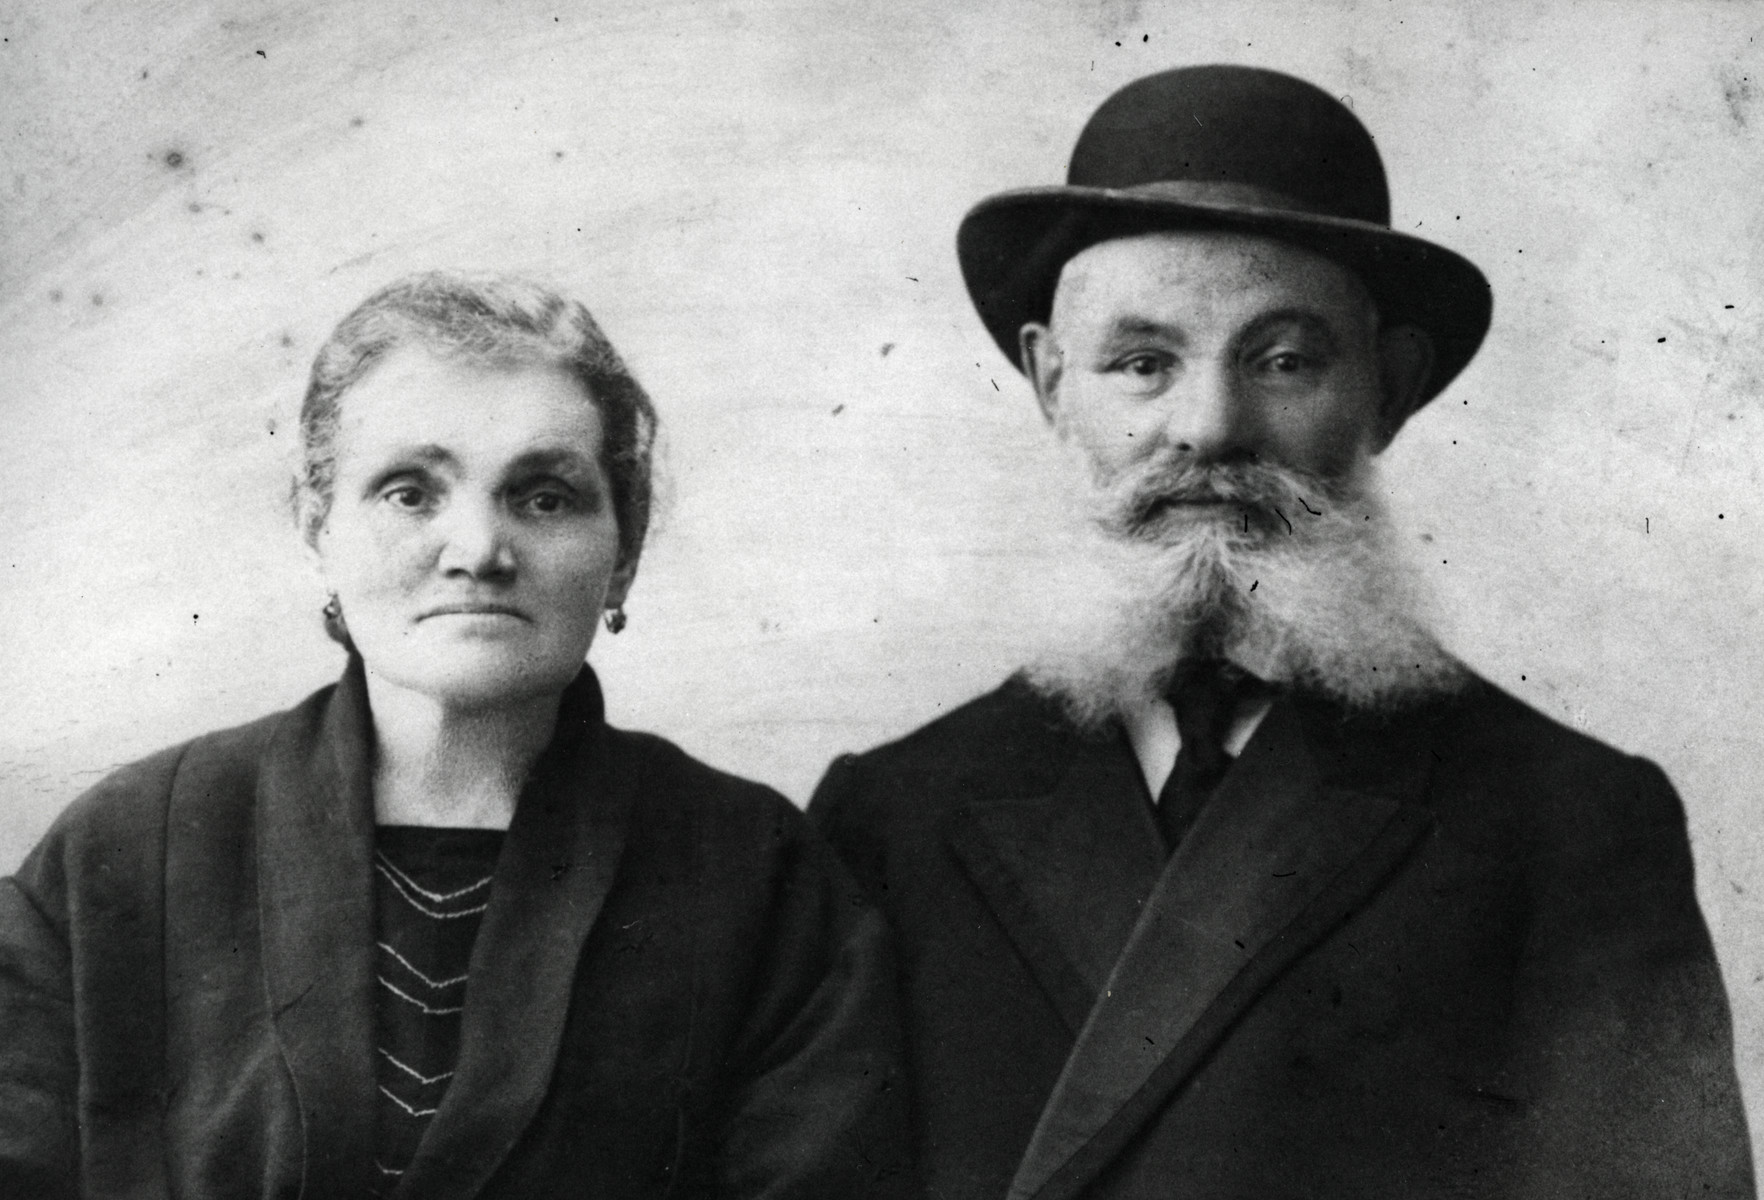 Studio portrait of Nachum and Zvia Kagen (maternal grandparents of the donor).